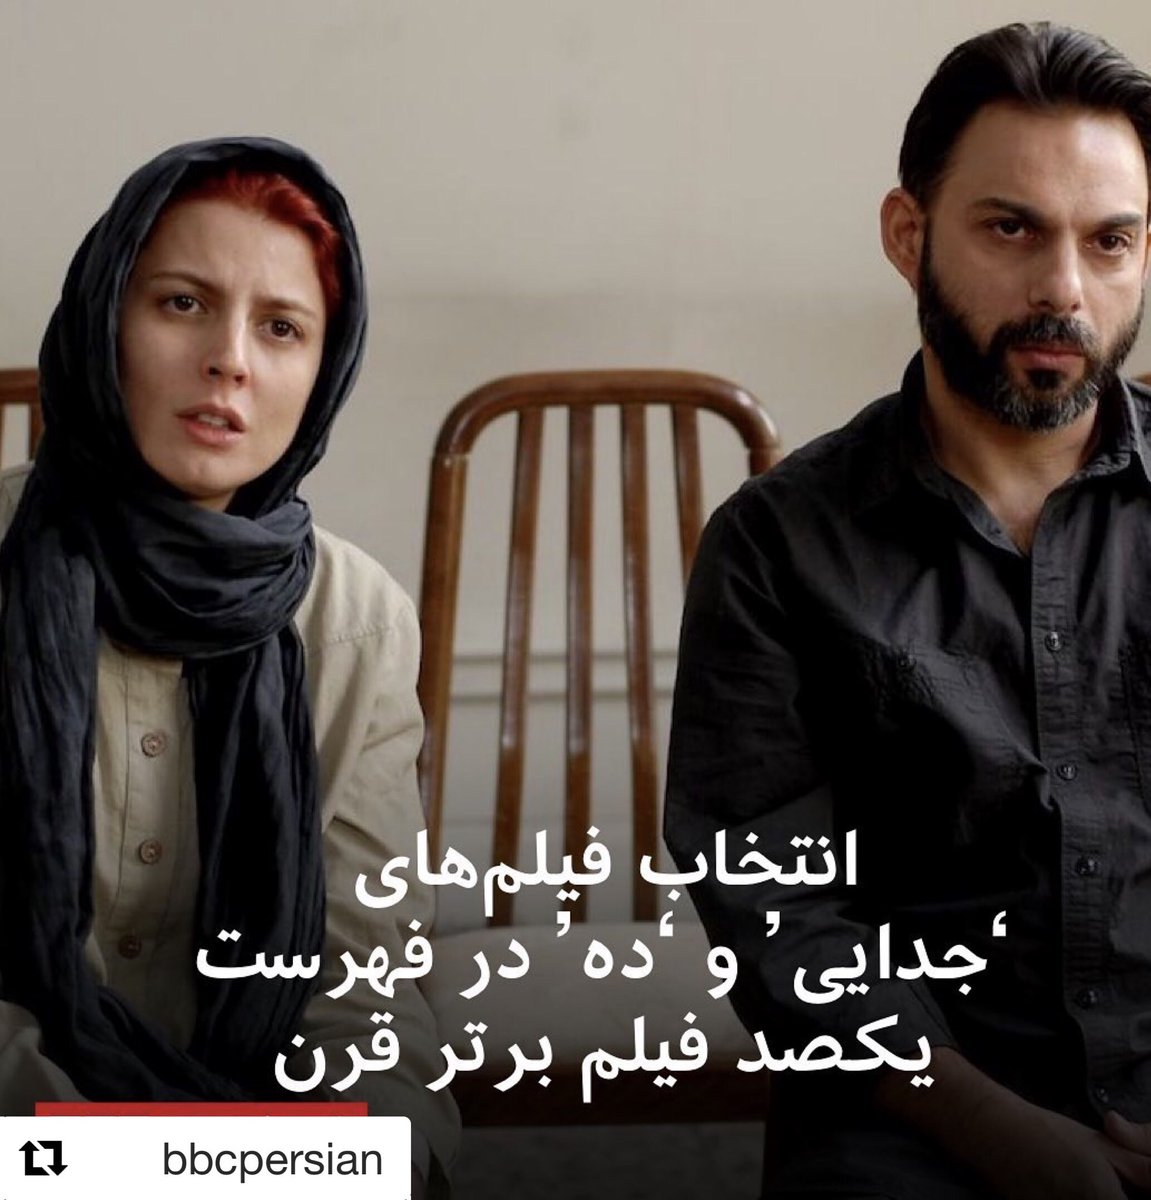 "👏🏼👏🏼The Iranian movie ""A Separation"" is listed amongst the ⁦@guardian⁩'s 100 best films of the century. Art is powerful, especially when it resonates & reflects realities rather than biases.👏🏼👏🏼"